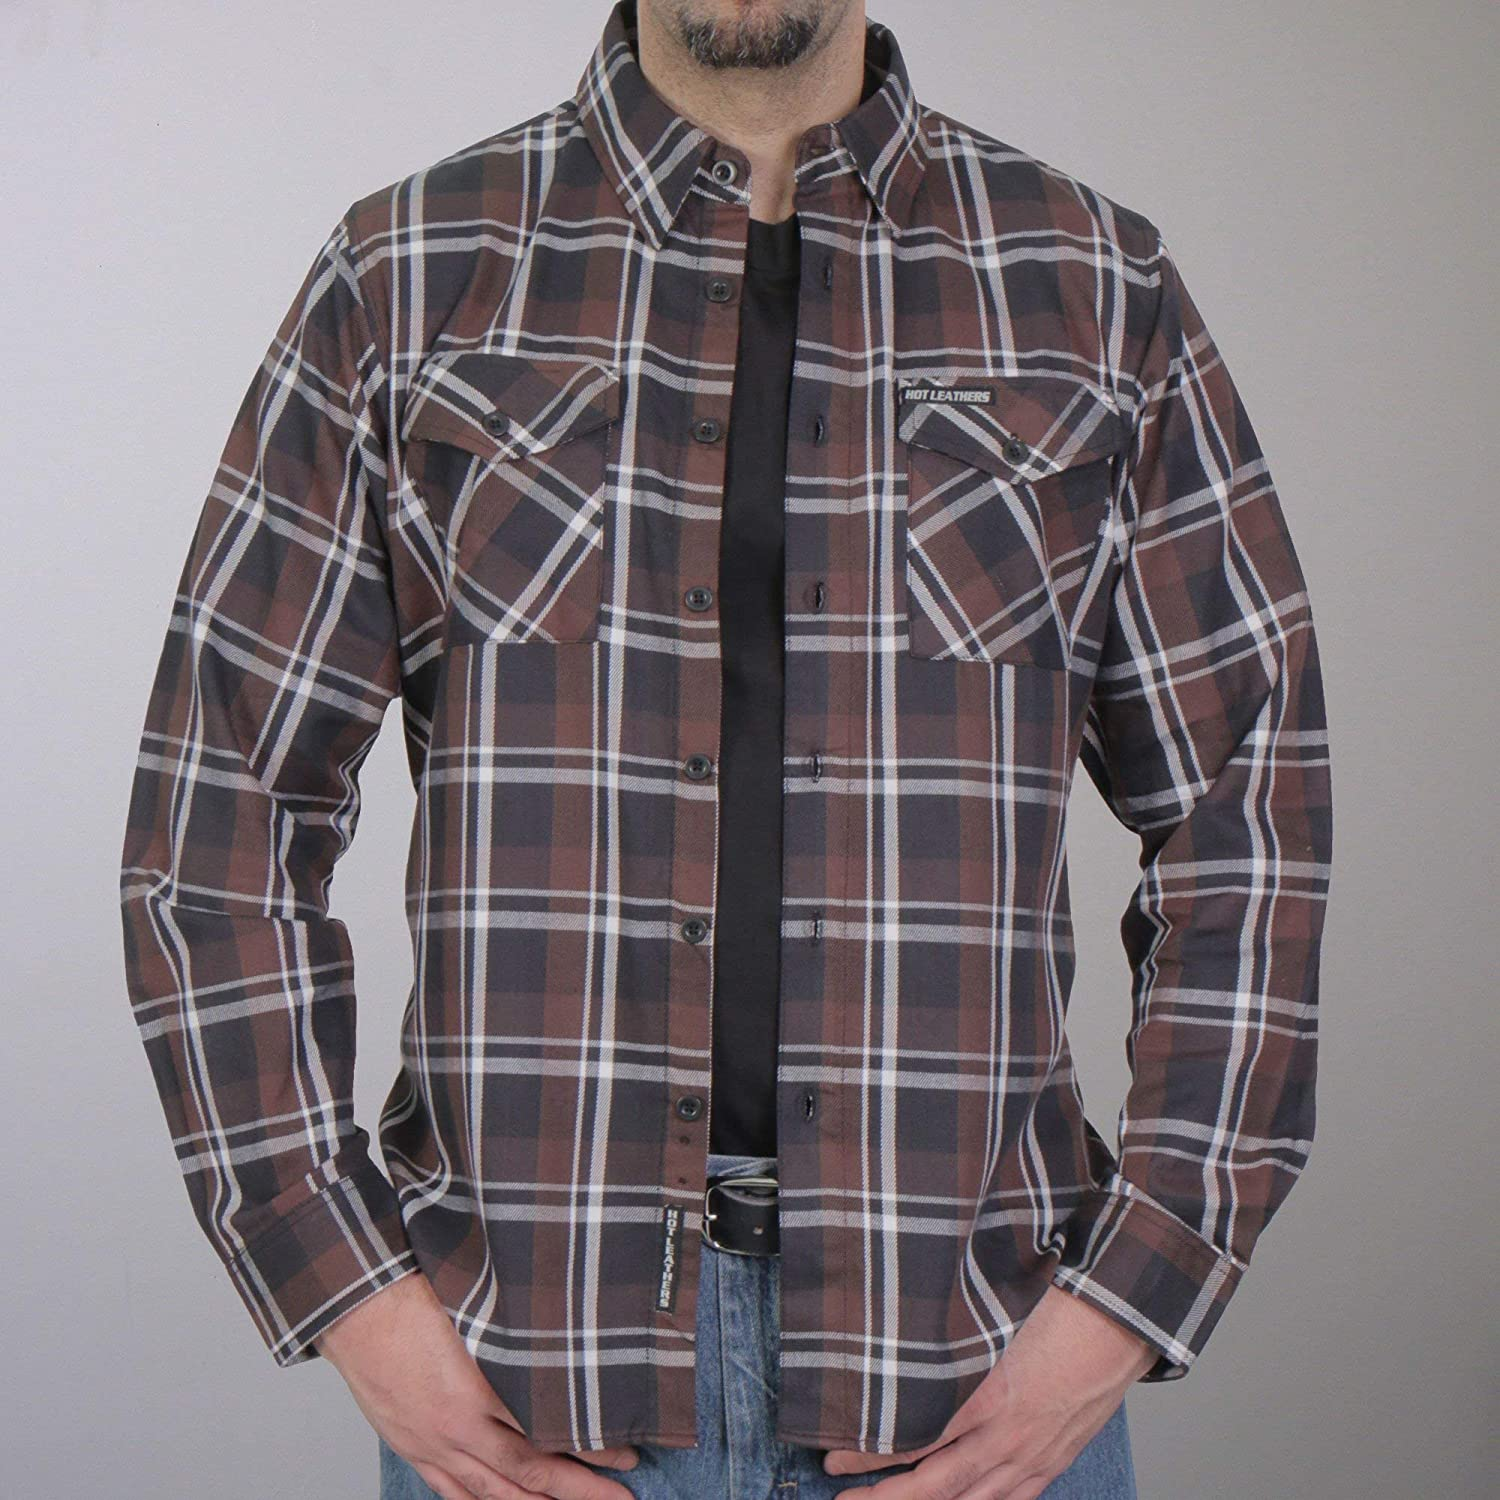 Hot Leathers FLM2008 Mens Brown Black and White Long Sleeve Flannel Shirt